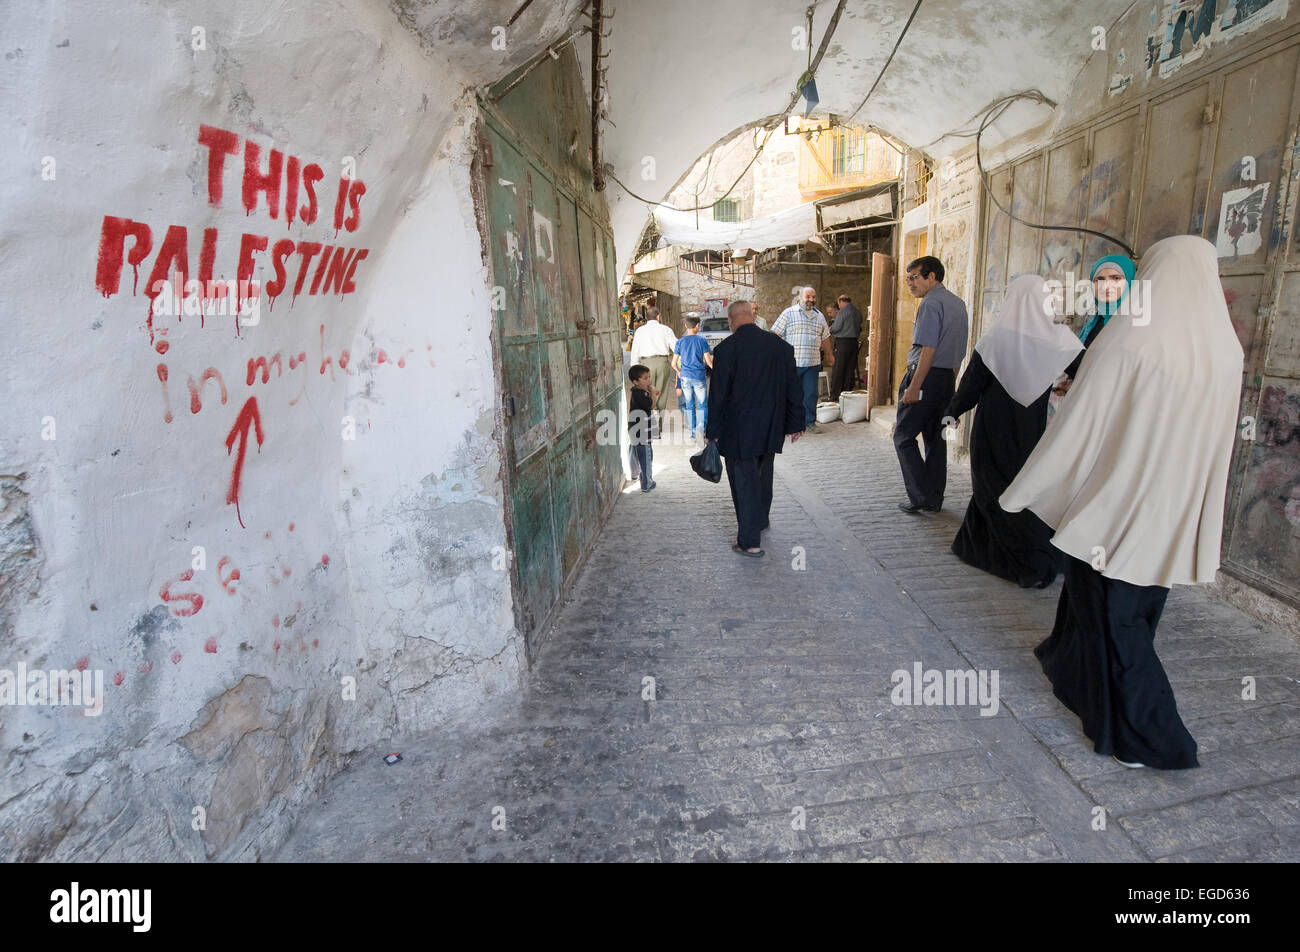 HEBRON, ISRAEL - 10 OCT, 2014: 'This is Palestine' written on a wall in one of the small streets in the - Stock Image